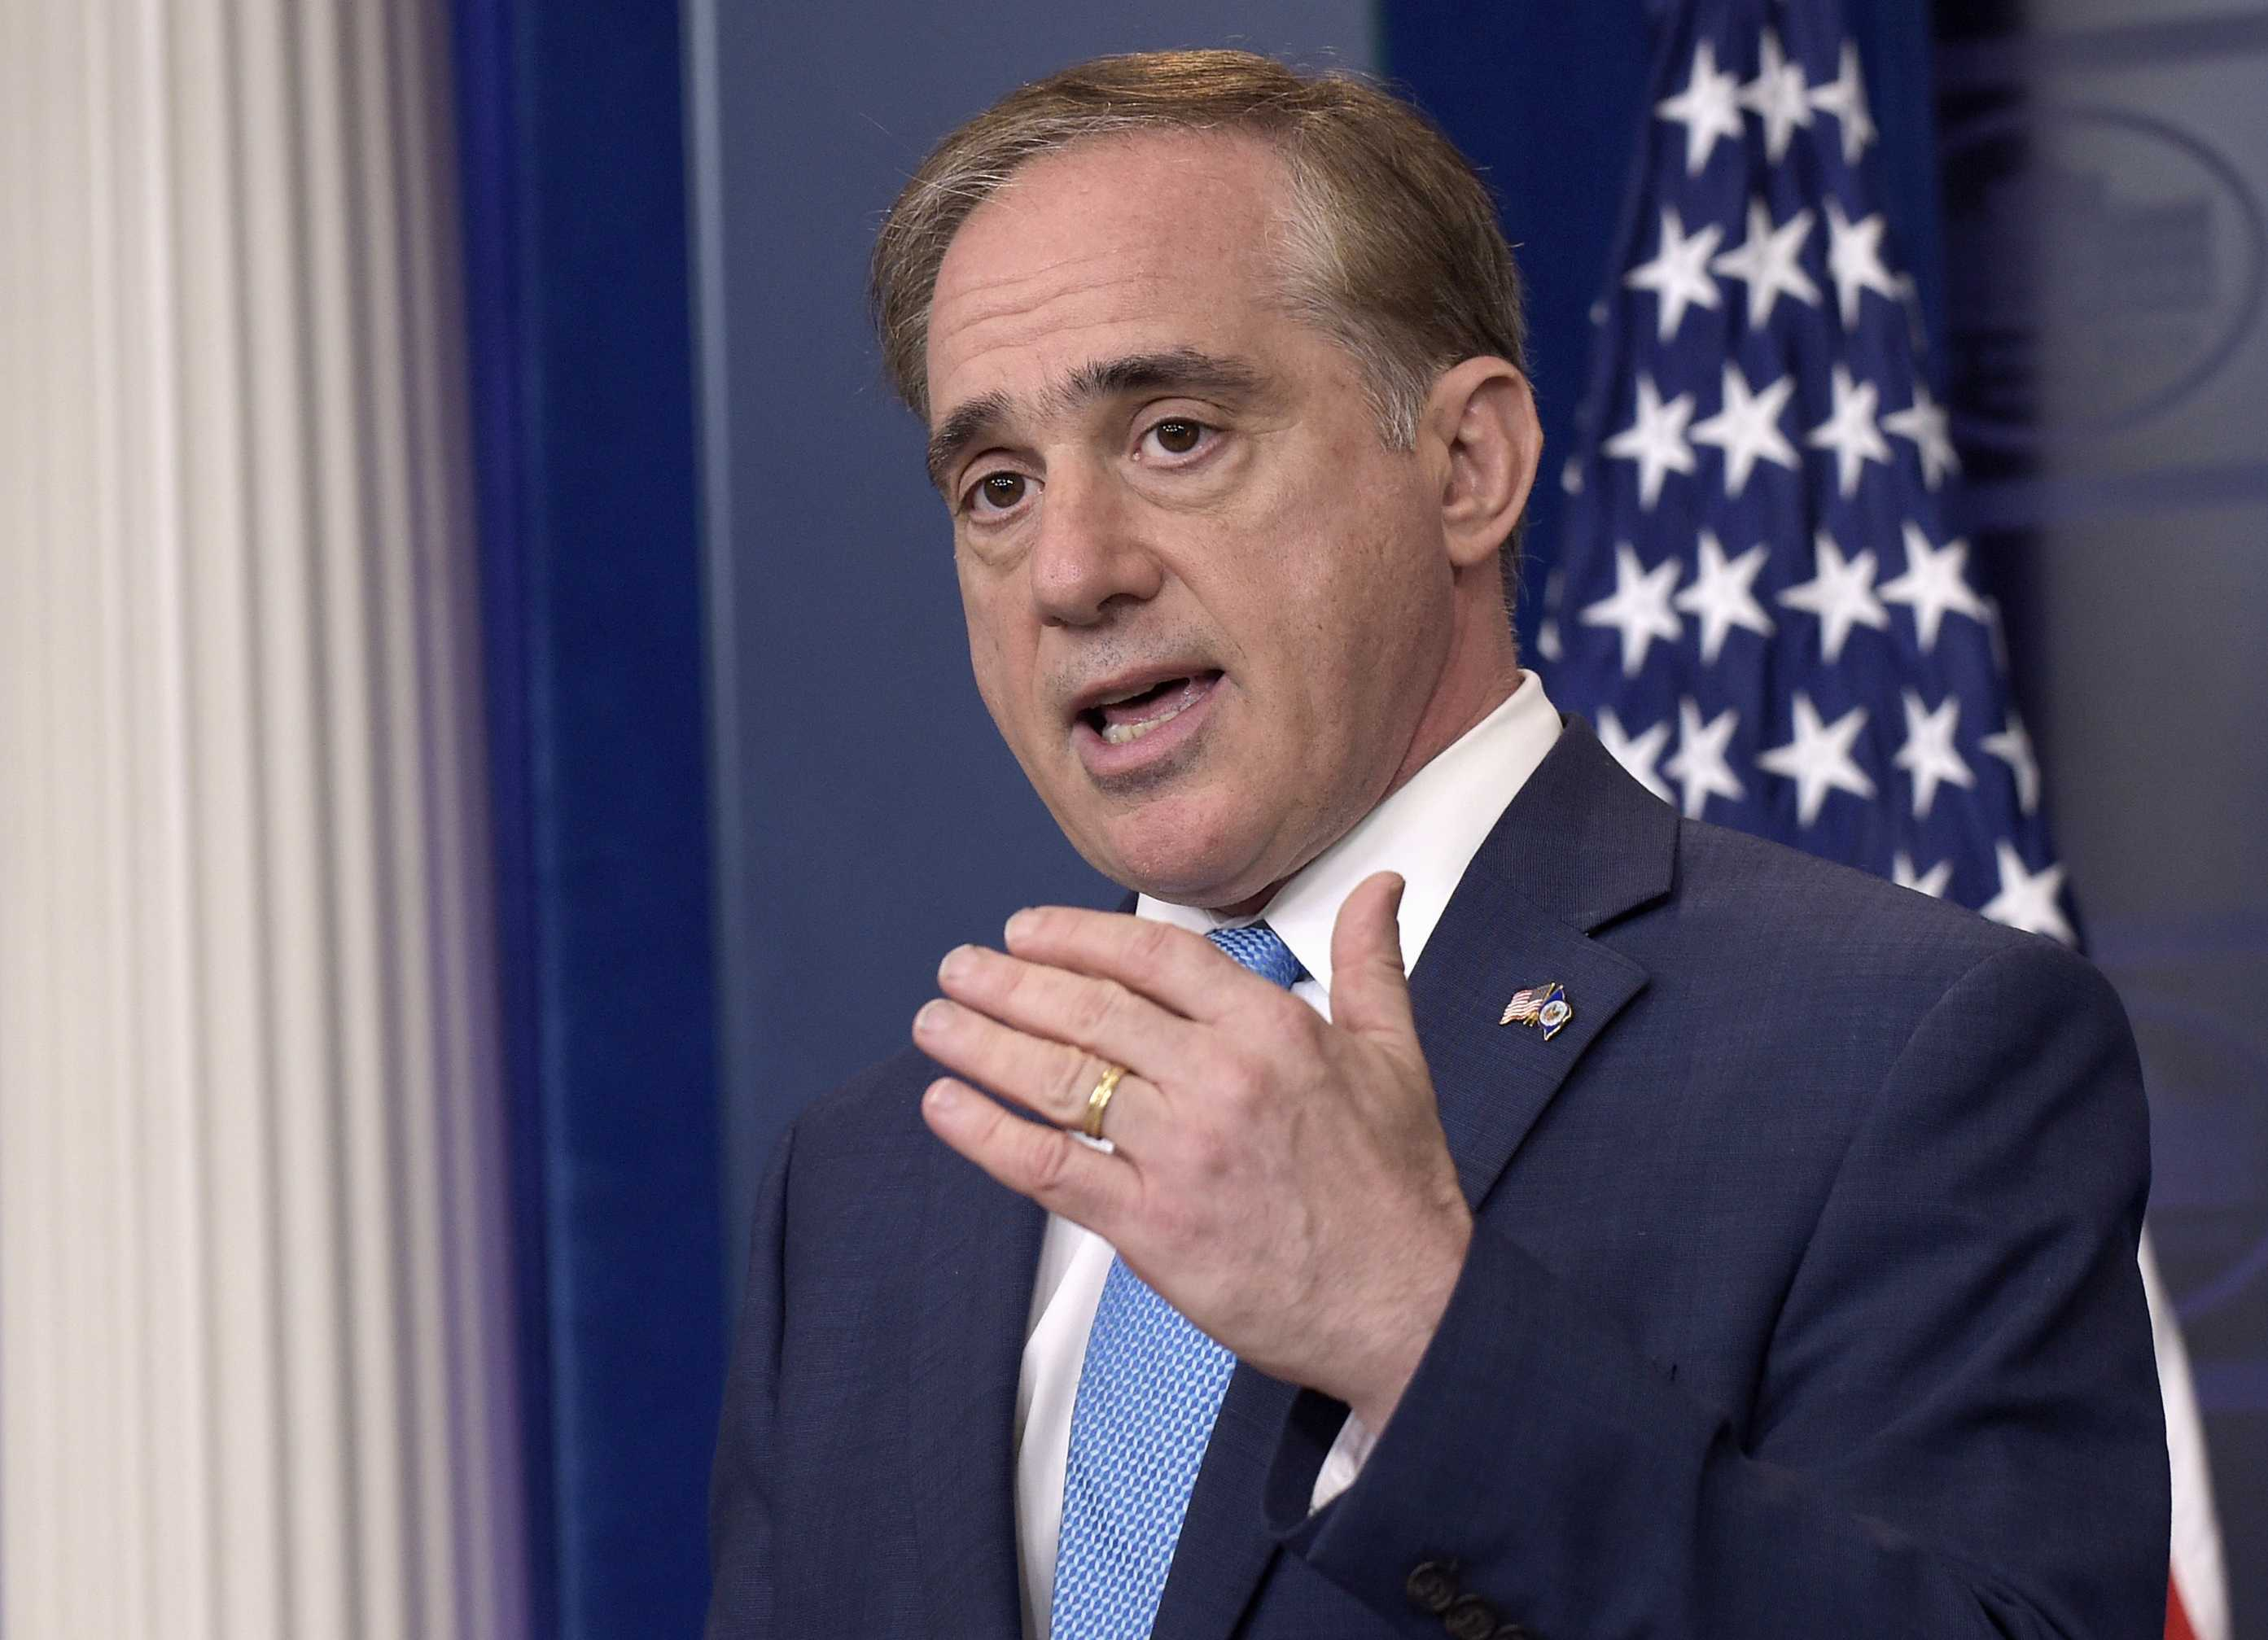 IG: Shulkin's chief of staff altered email for wife's expenses